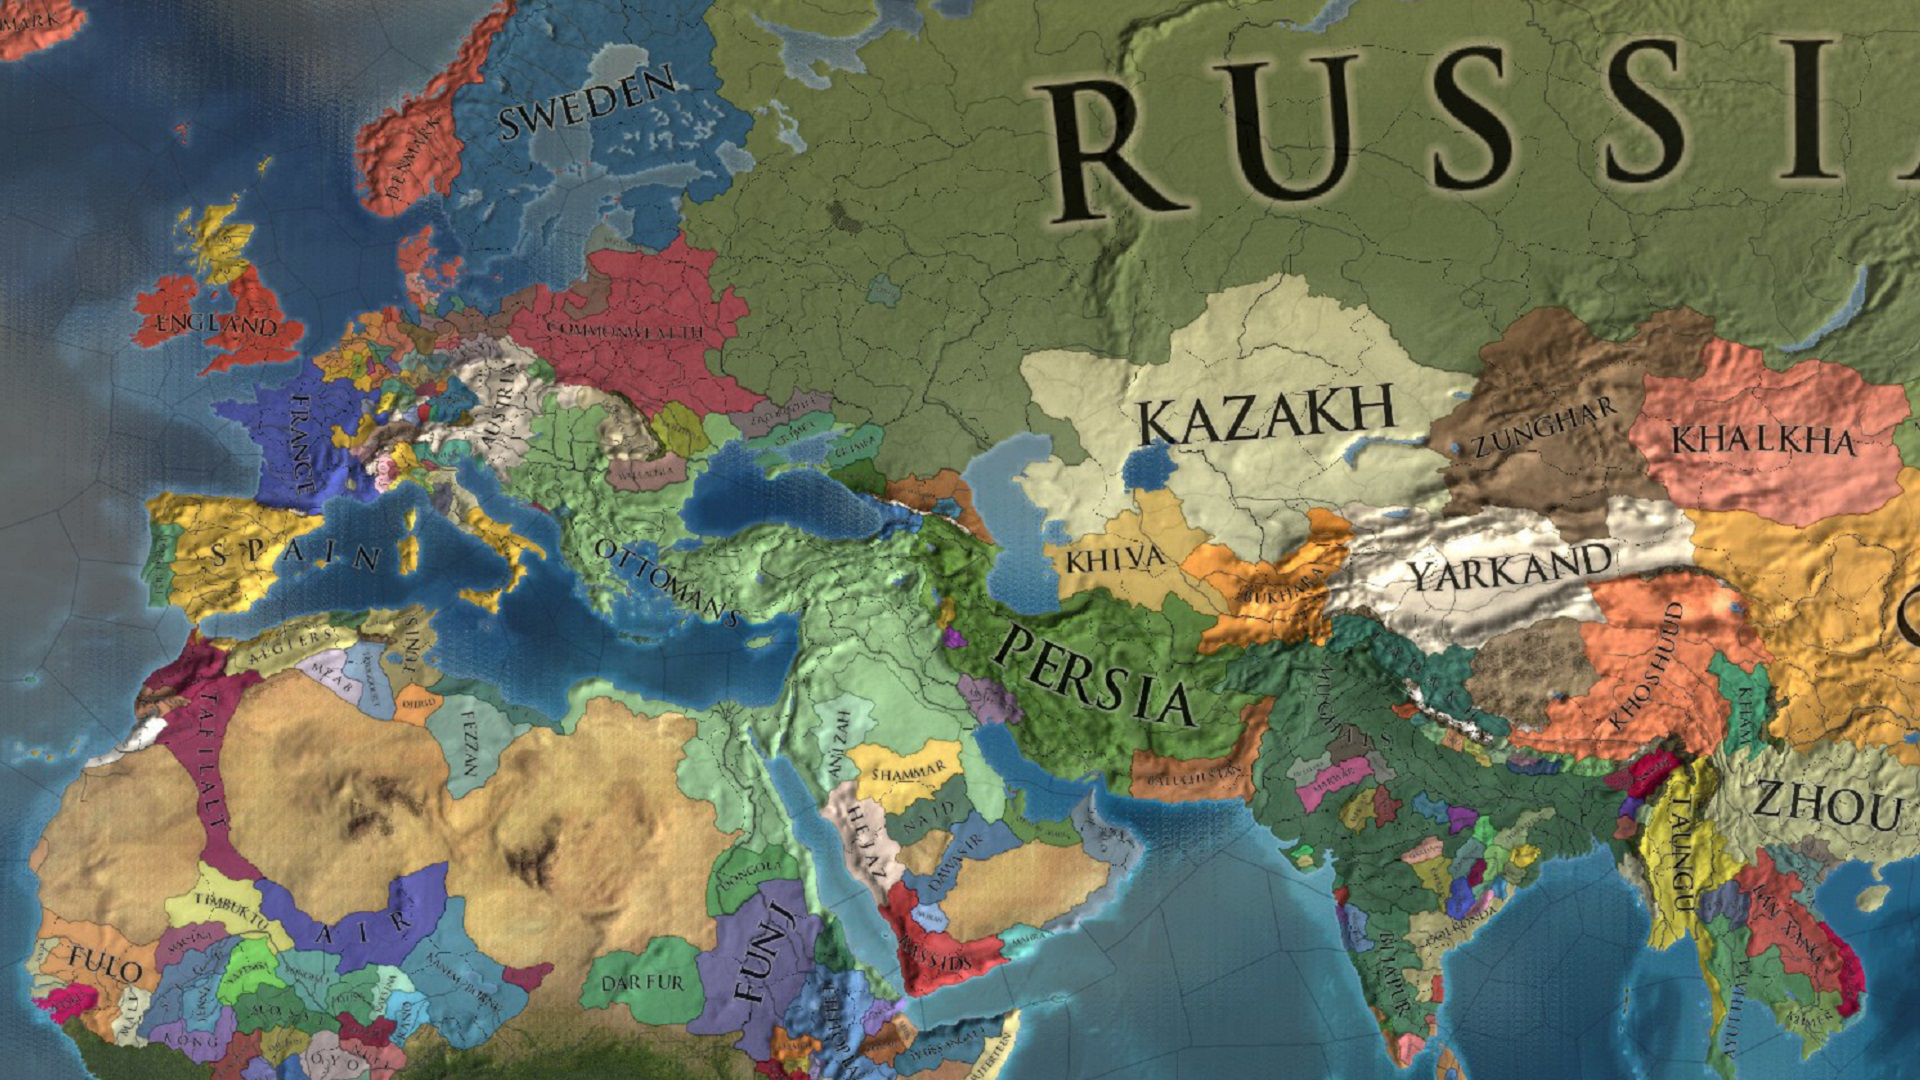 EU4 multiplayer gets patched, breaks, gets immediately unpatched